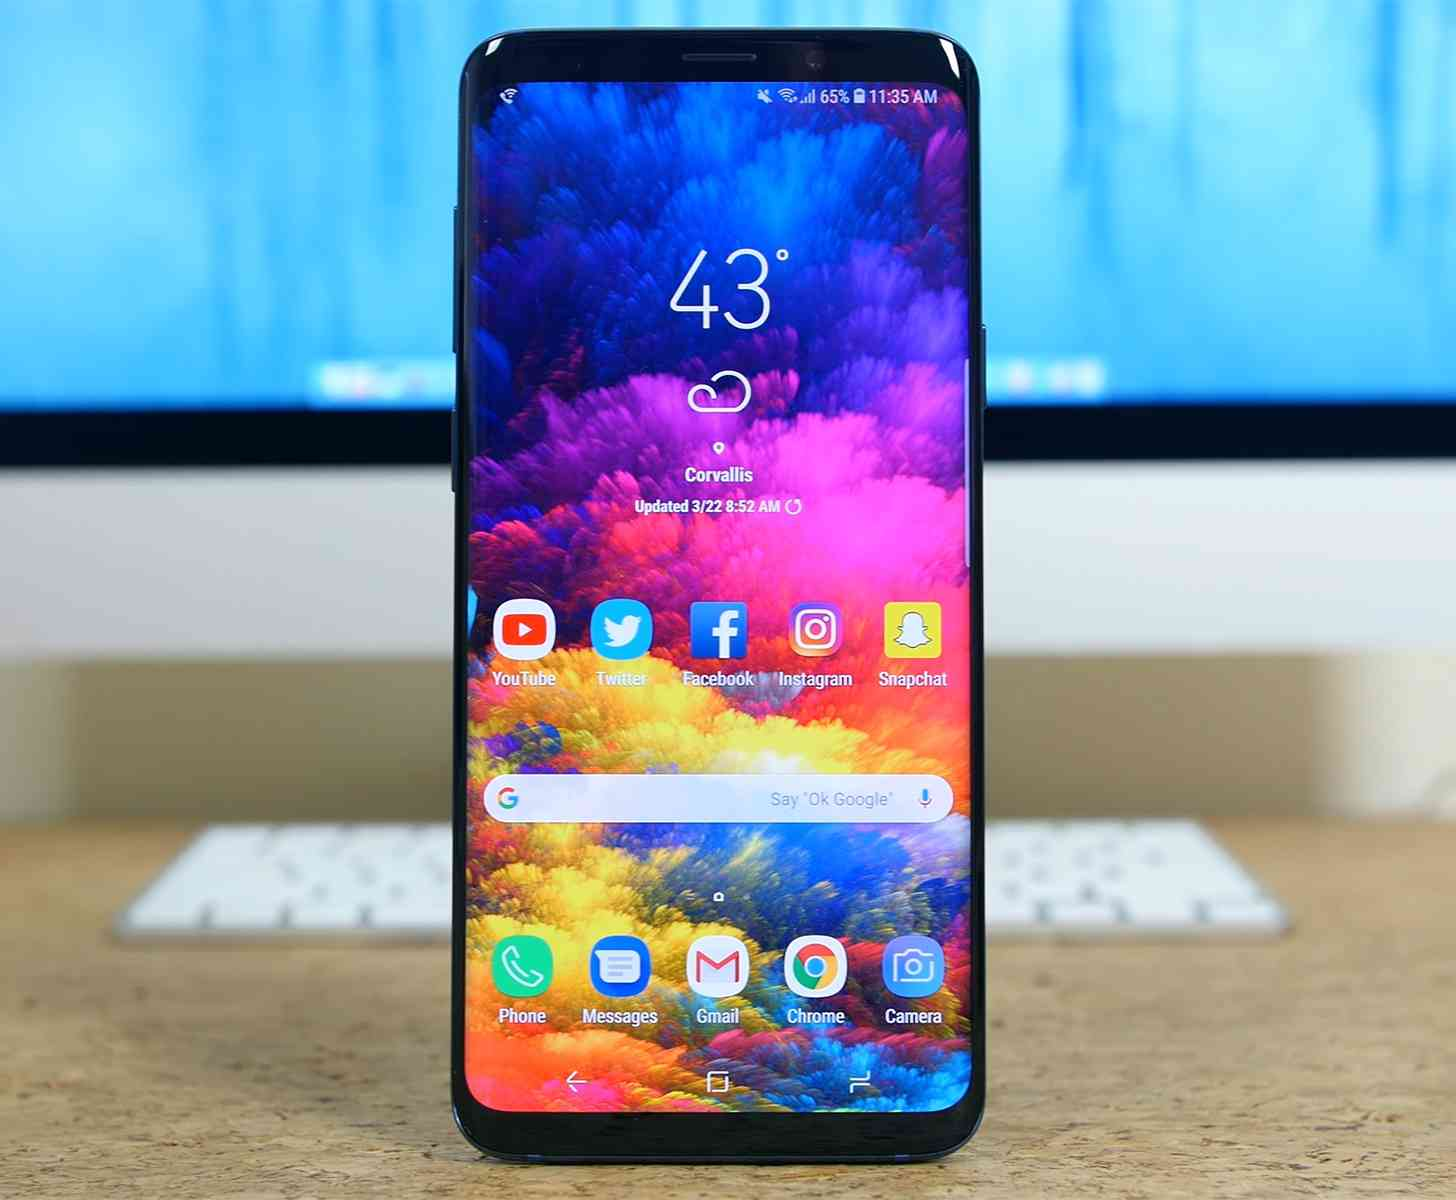 Buy cell jammer - At T-Mobile, buy one Galaxy S8, get the second free